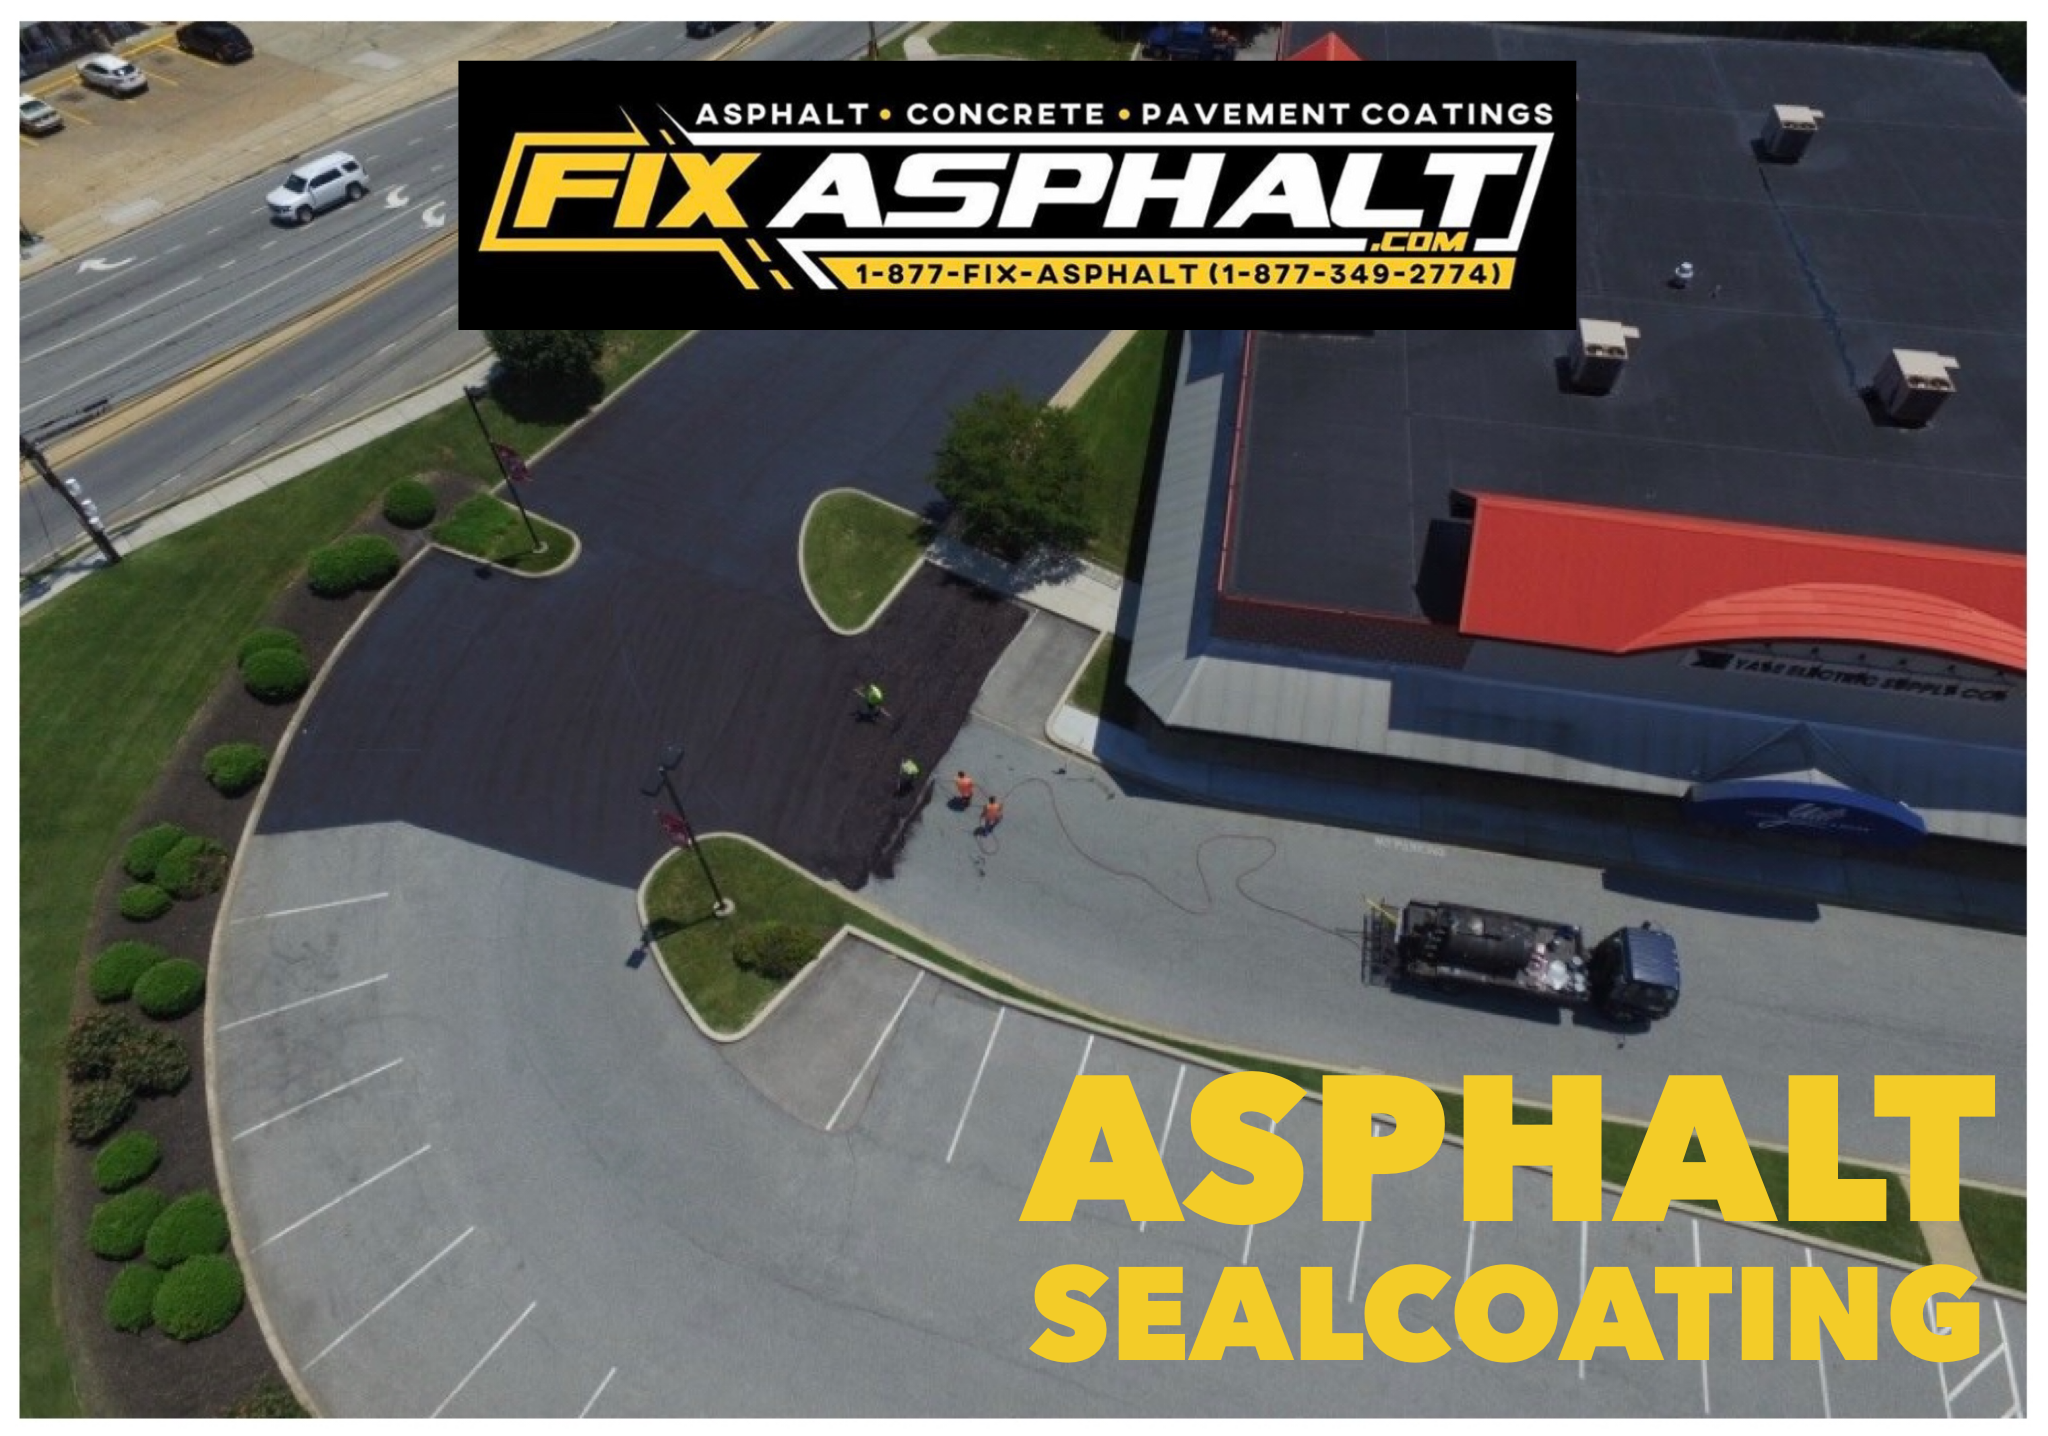 NJ Asphalt Sealcoating and Paving